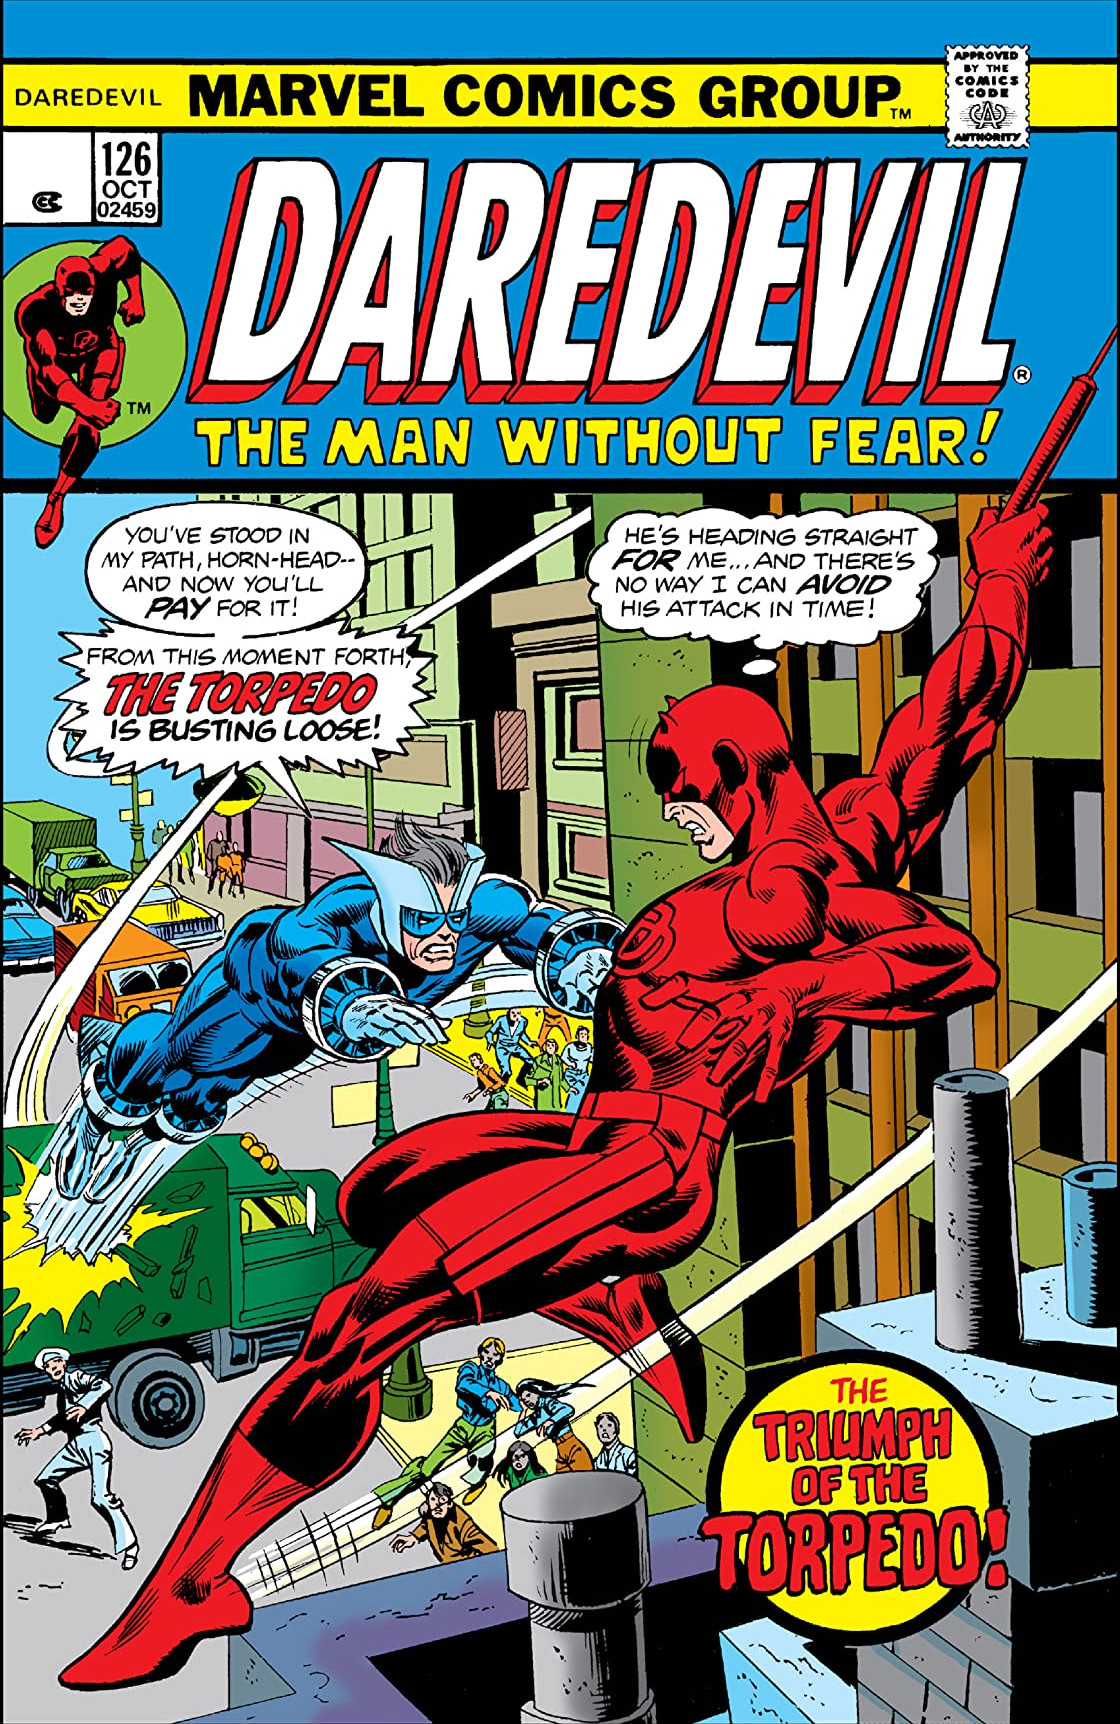 https://vignette.wikia.nocookie.net/marveldatabase/images/5/51/Daredevil_Vol_1_126.jpg/revision/latest?cb=20080808204134